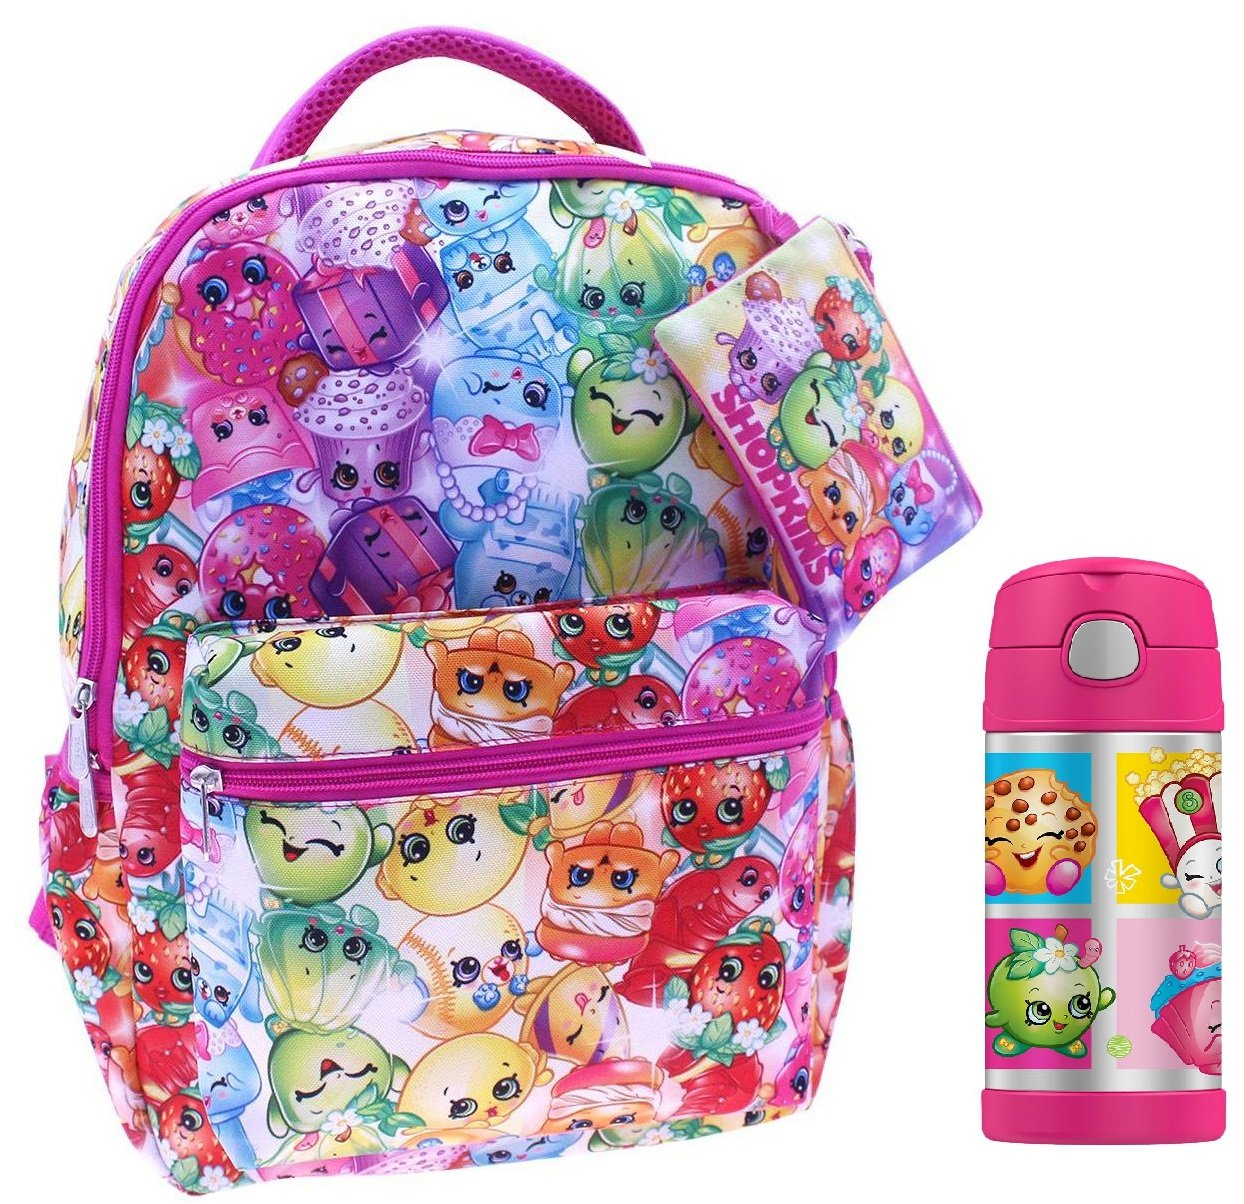 Shopkins Back to School 3 Pc Set with Backpack, Carry Case, and Thermos Bottle by Moose Toys